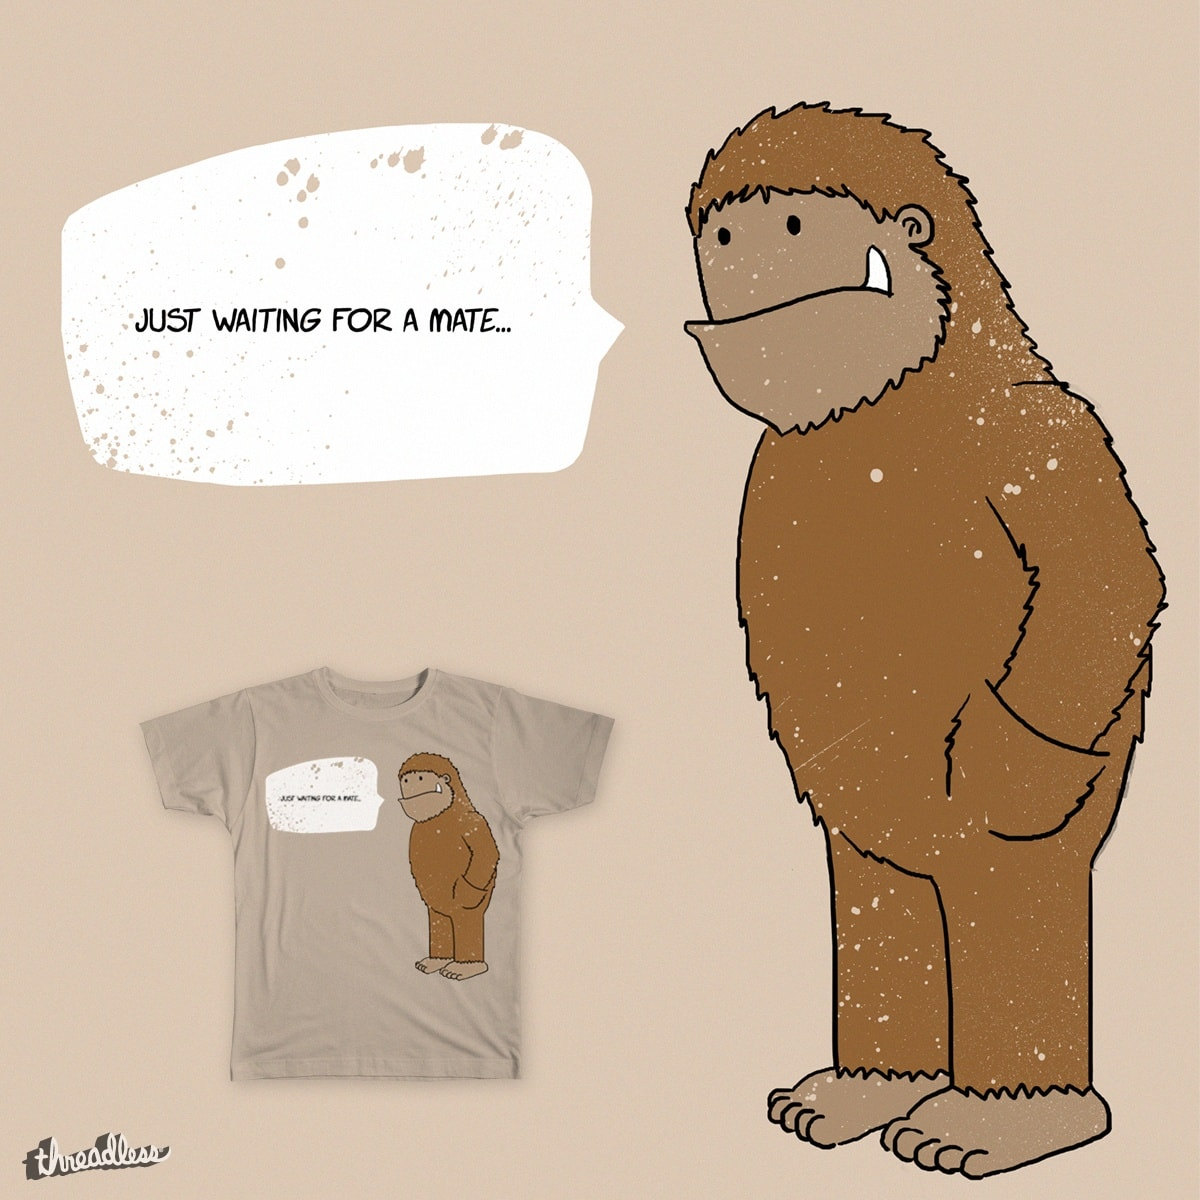 Just waiting for a mate... by LoudMinds2016 on Threadless